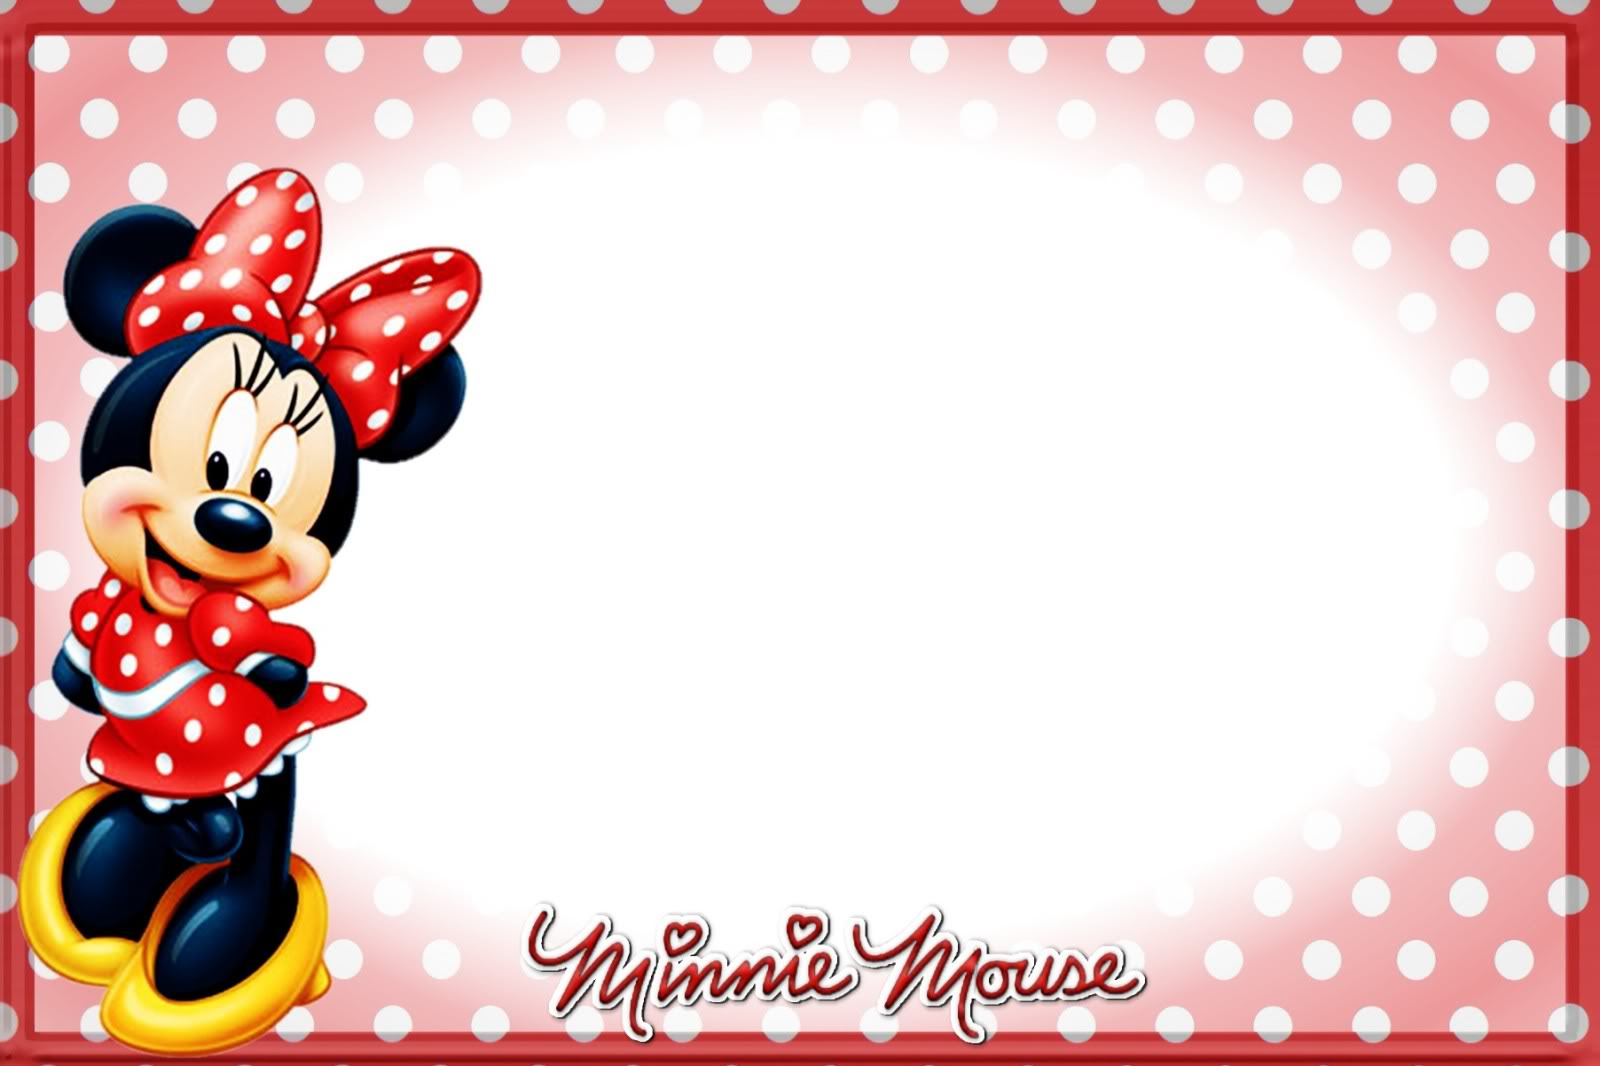 Printable Minnie Mouse Birthday Invitations – Bagvania FREE ...